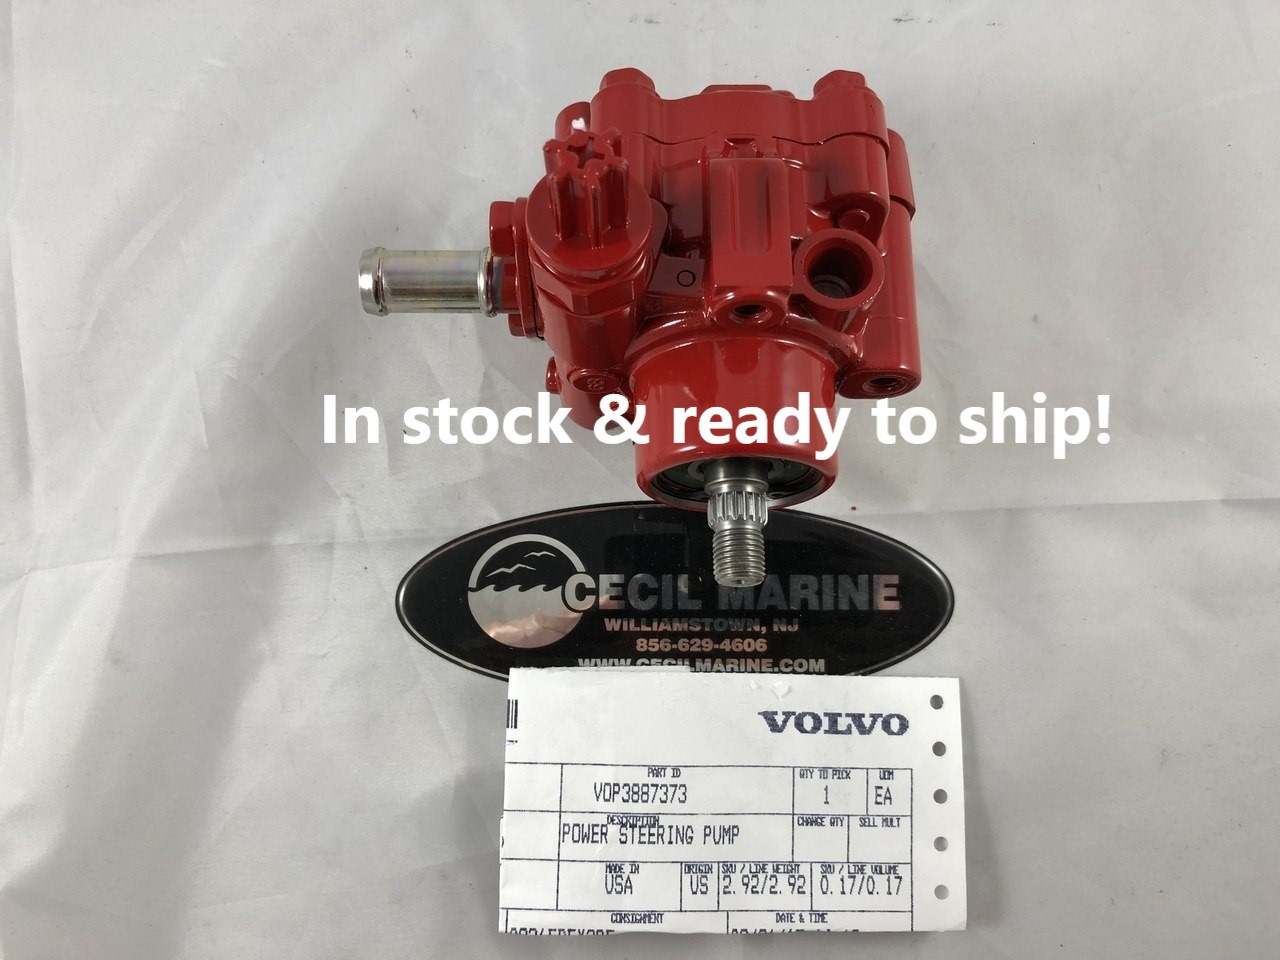 439 47 genuine volvo power steering pump 3887373 in stock ready to ship  [ 1280 x 960 Pixel ]